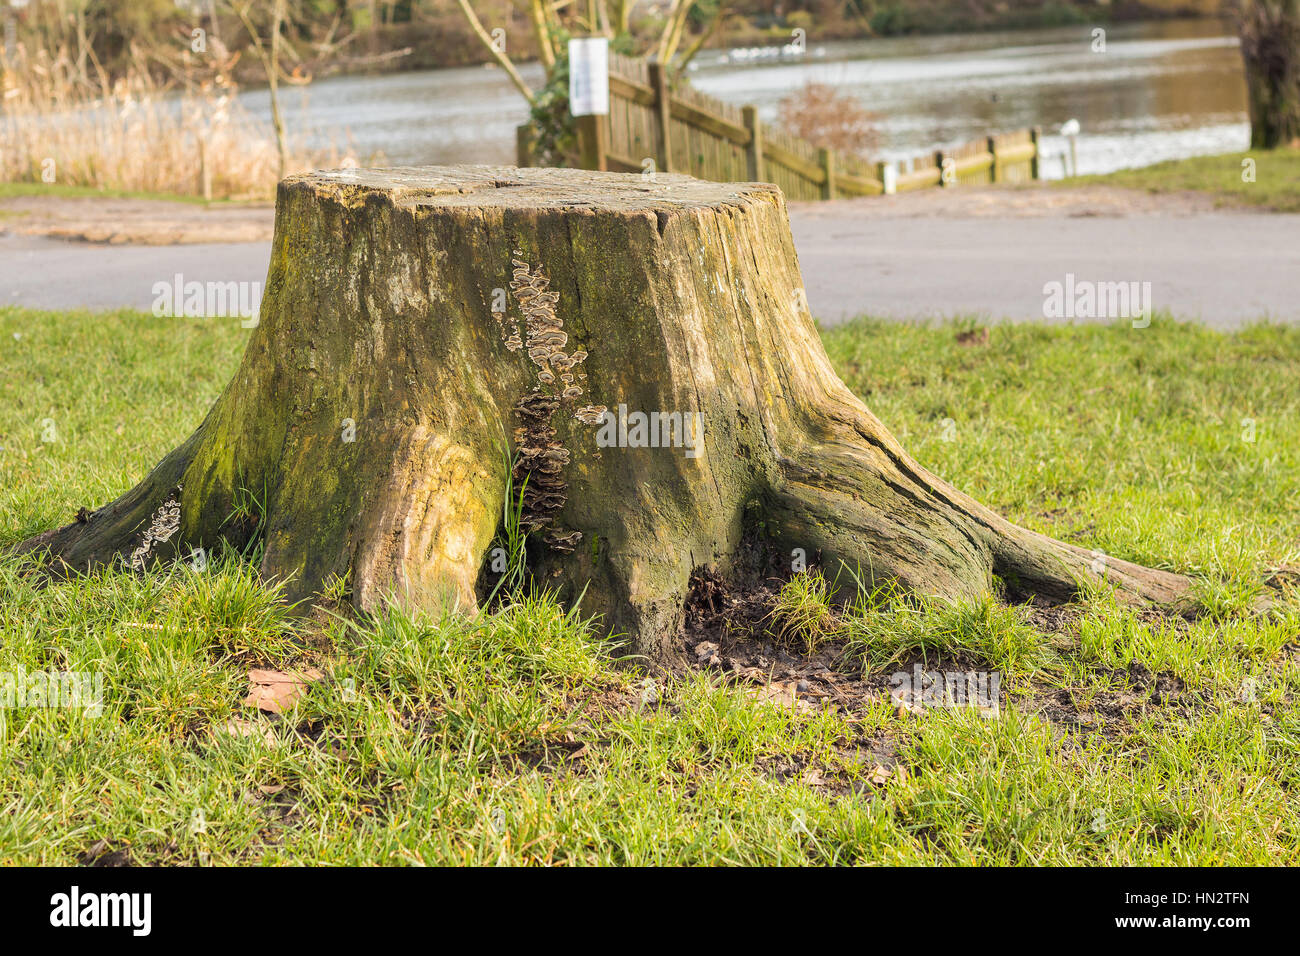 Old Tree Stump Of Cutted Tree In The Park Full Of